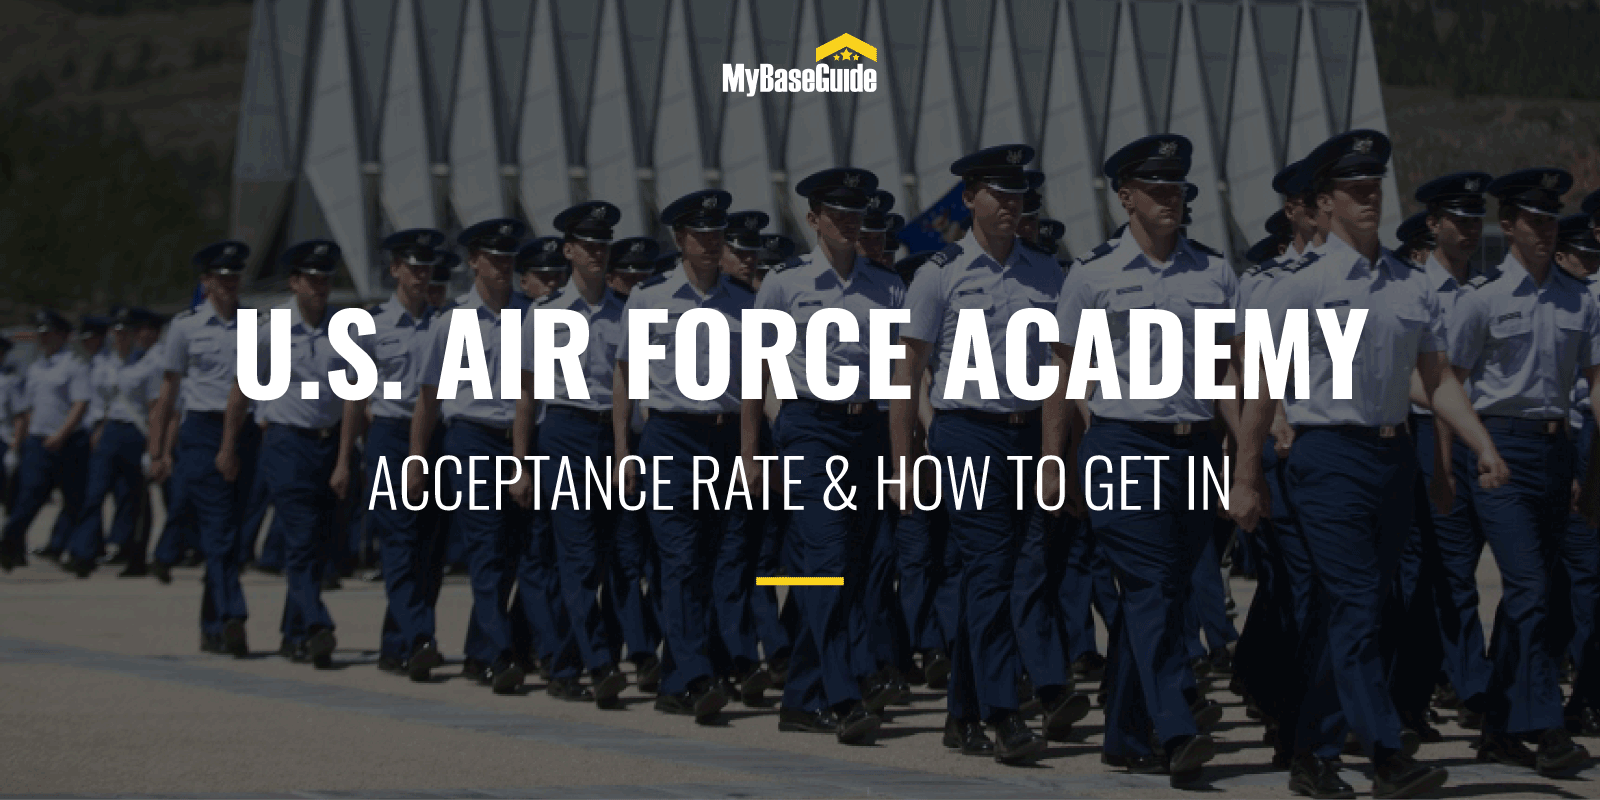 U.S. Air Force Academy Acceptance Rate & How to Get in